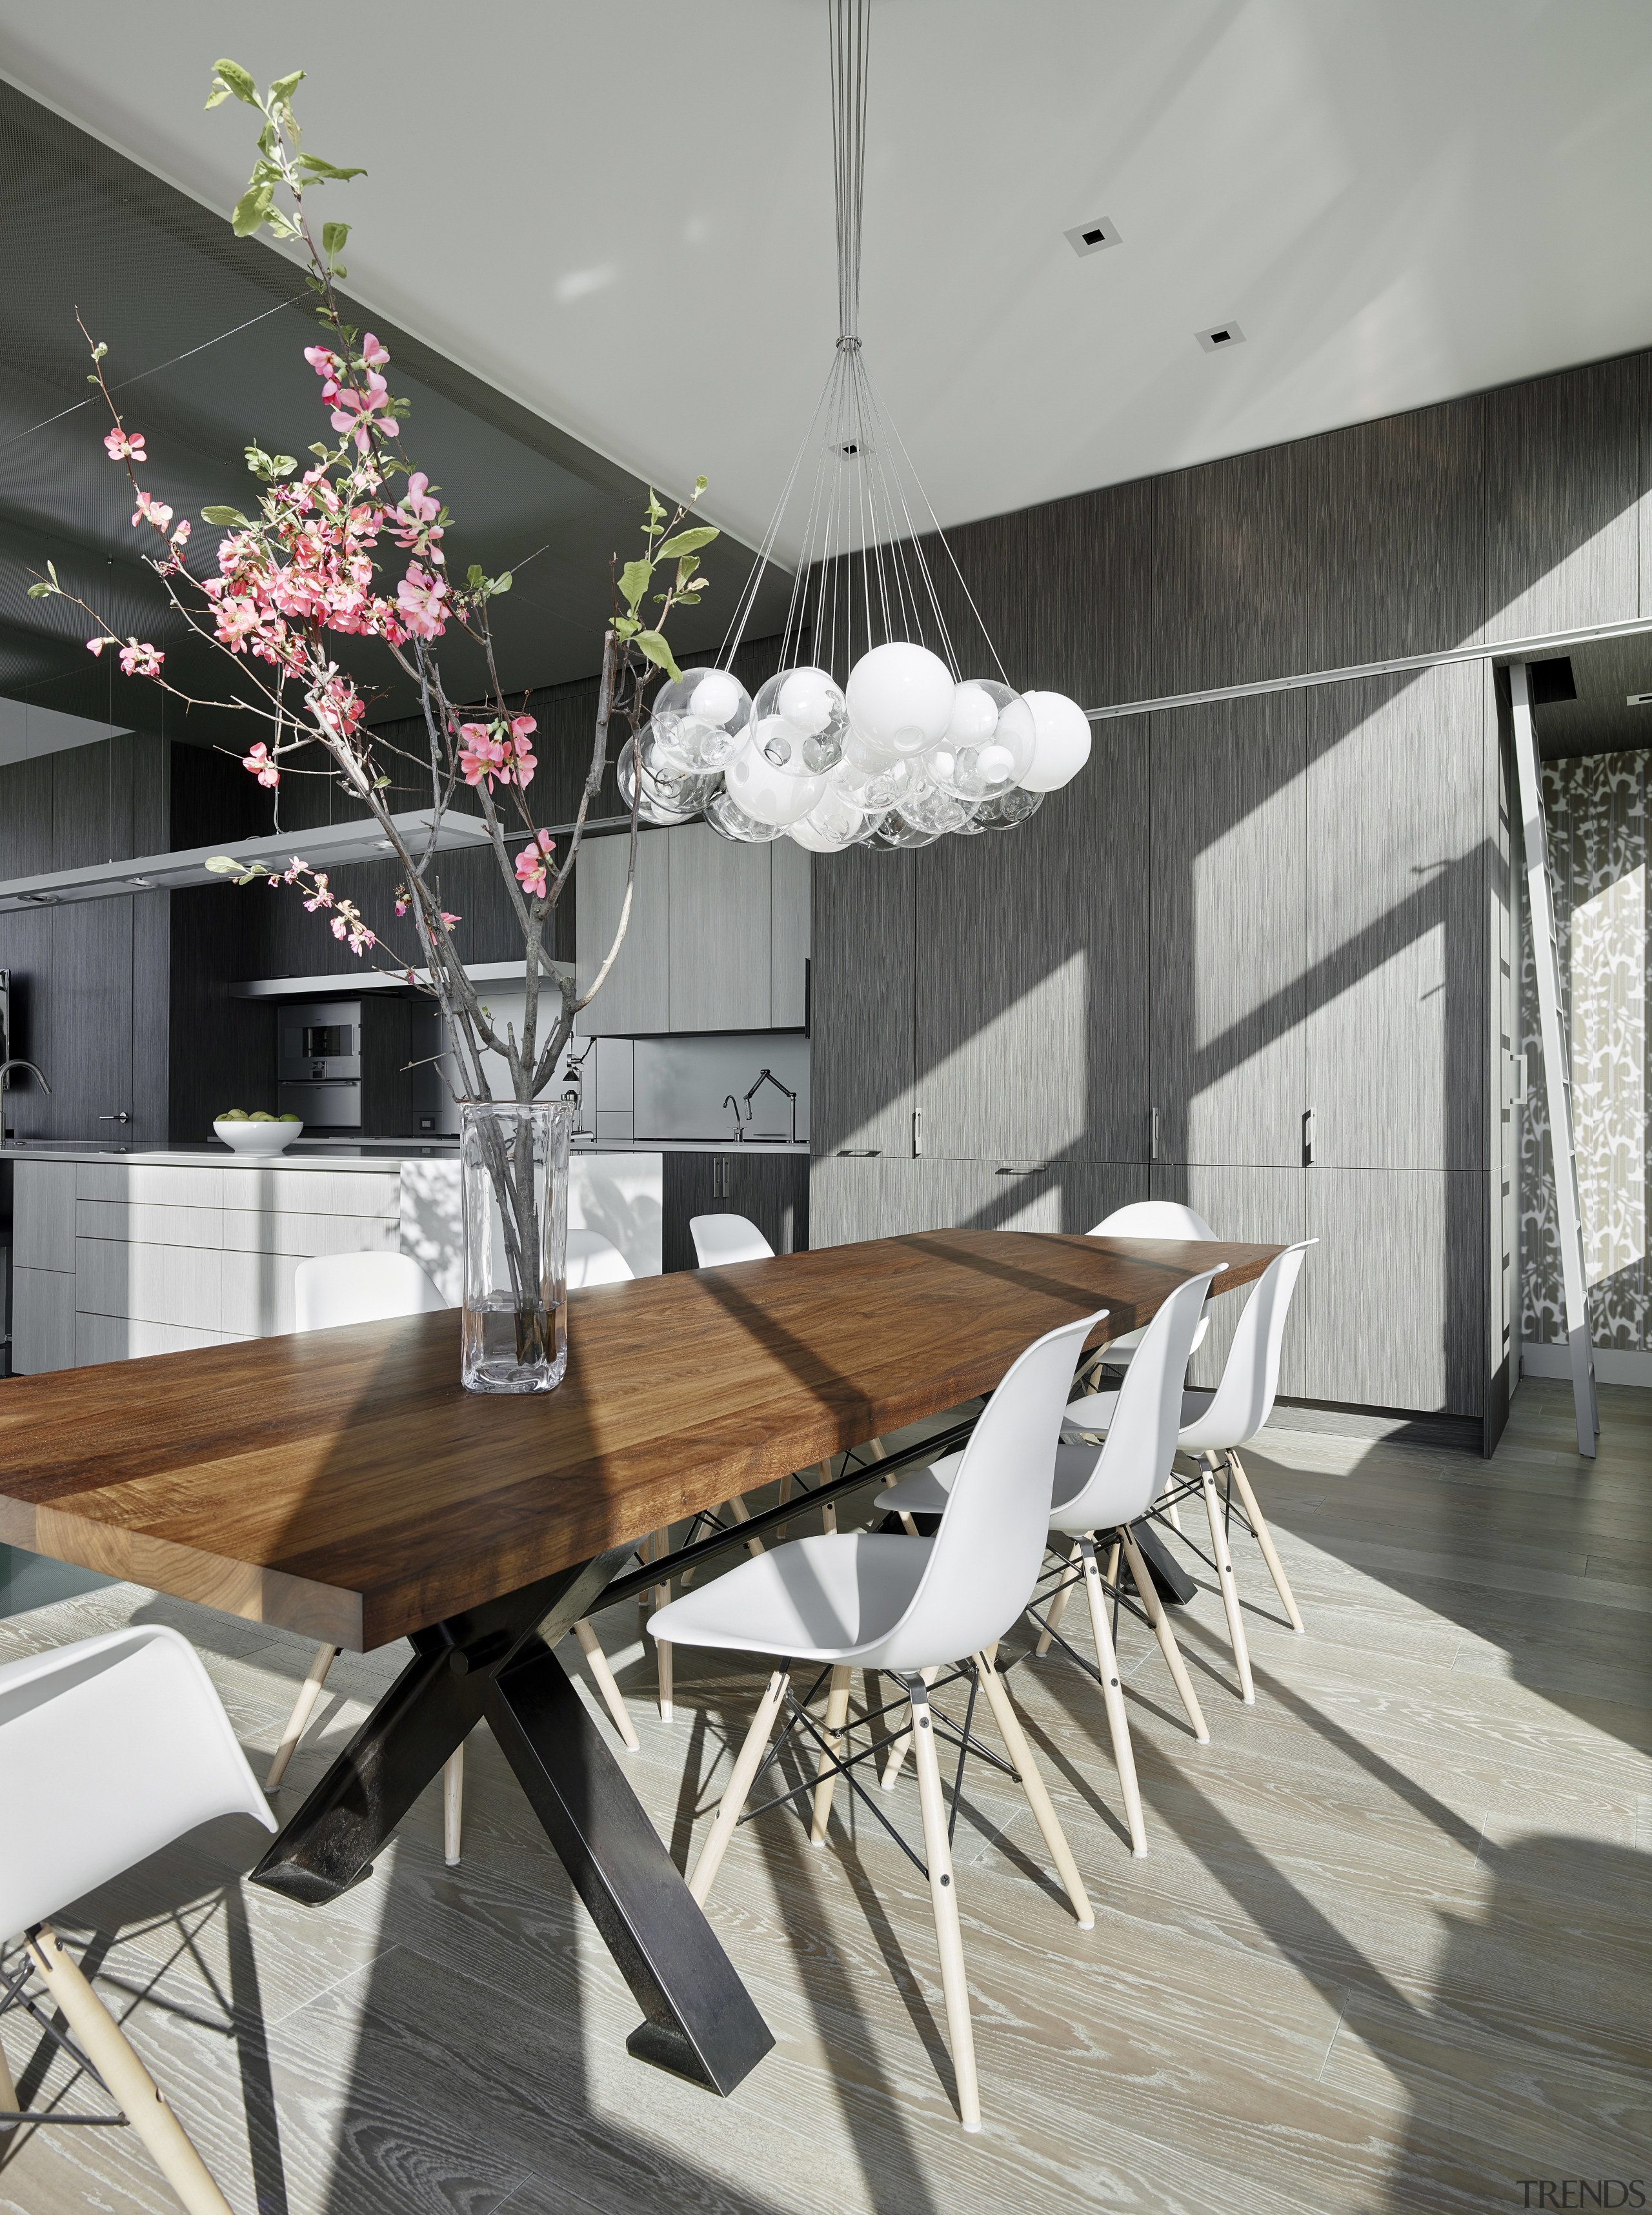 Cabinets beside the dining area hide a powder architecture, chair, dining room, furniture, home, house, interior design, table, gray